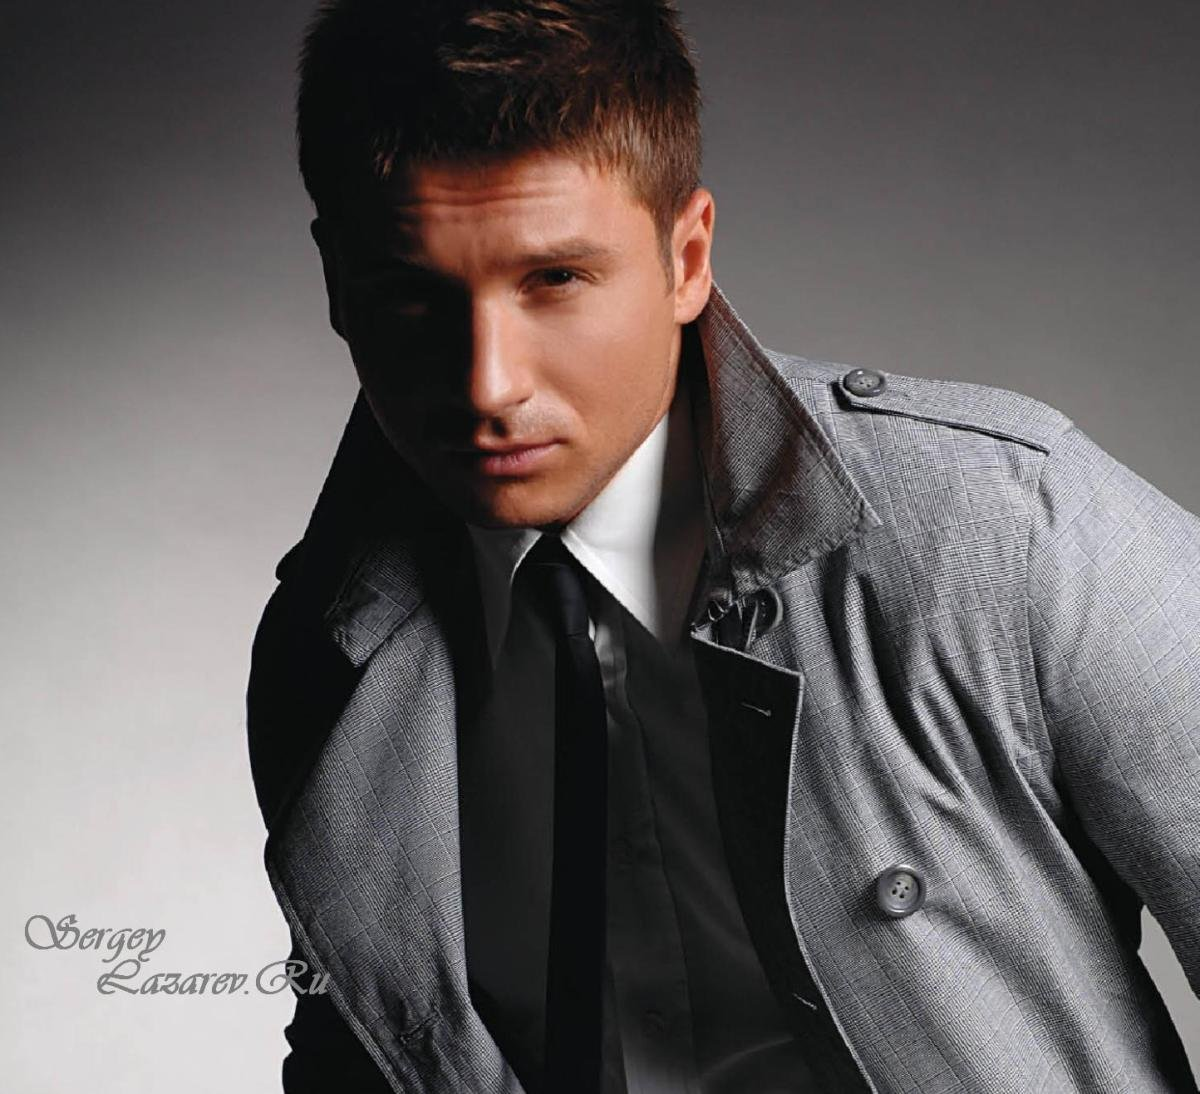 Sergey Lazarev photo #417981